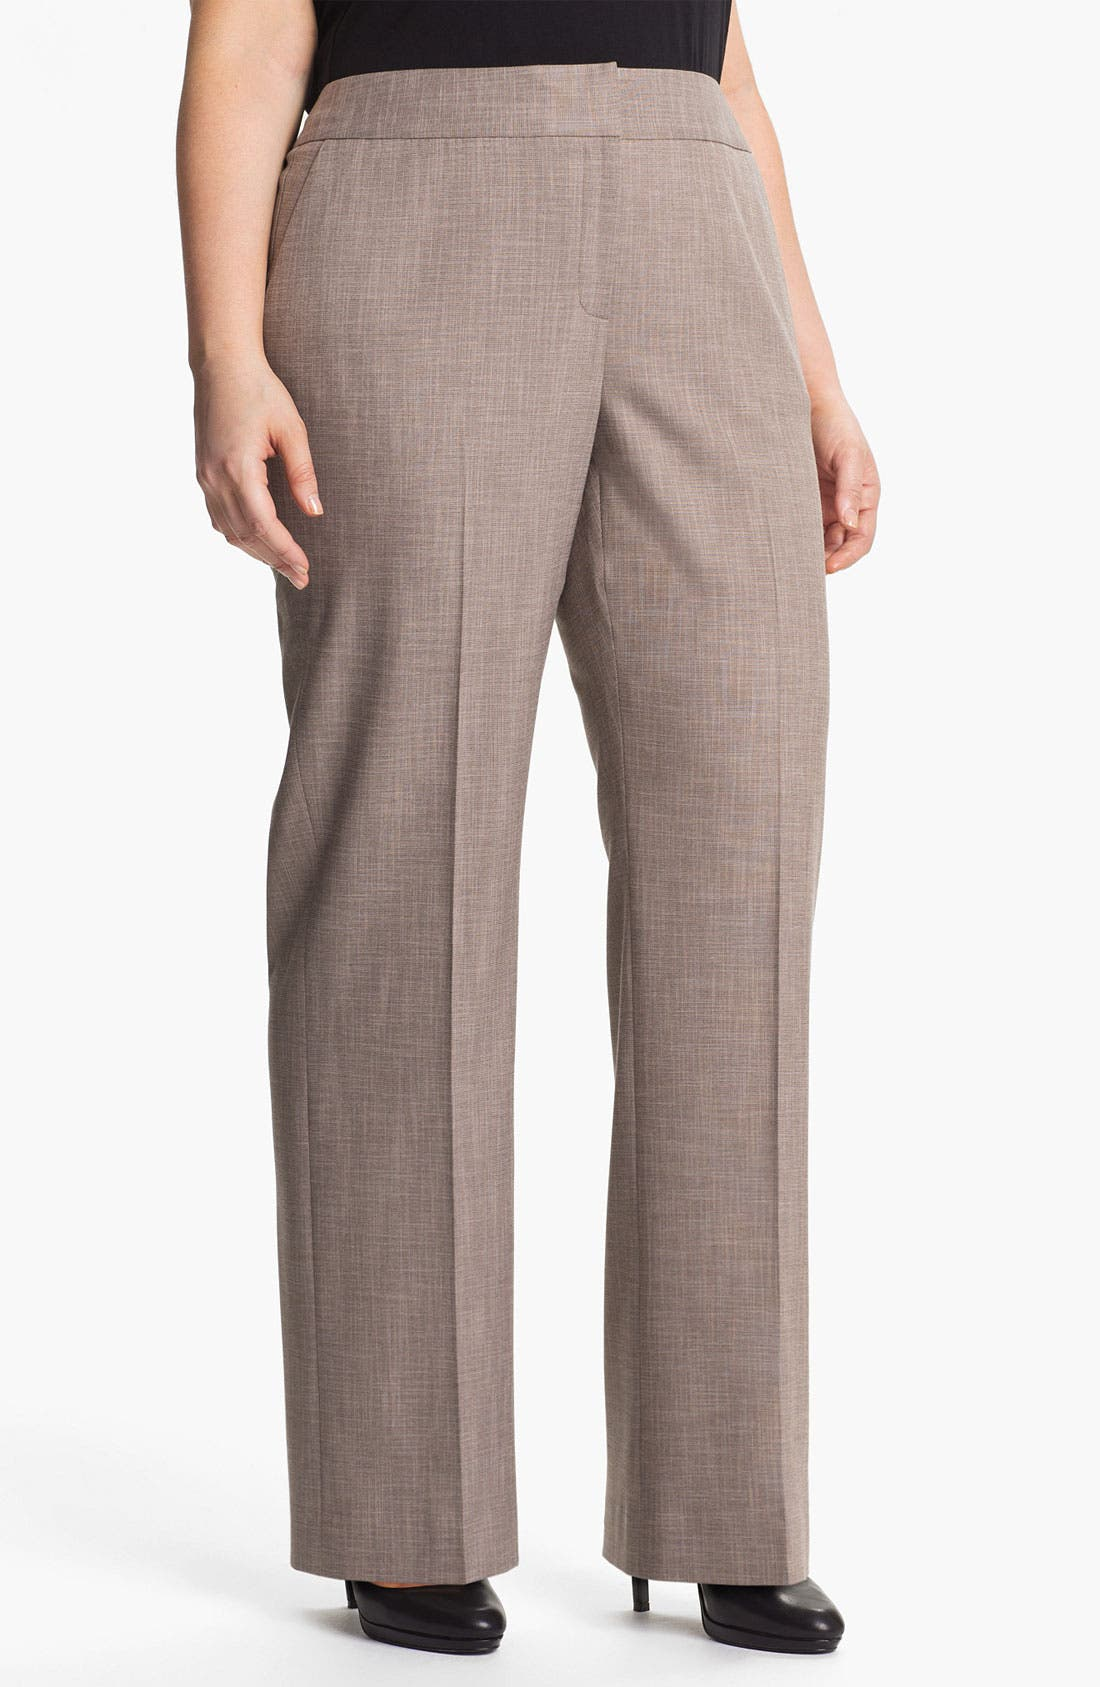 Alternate Image 1 Selected - Sejour 'Metric' Curvy Fit Trousers (Plus Size)